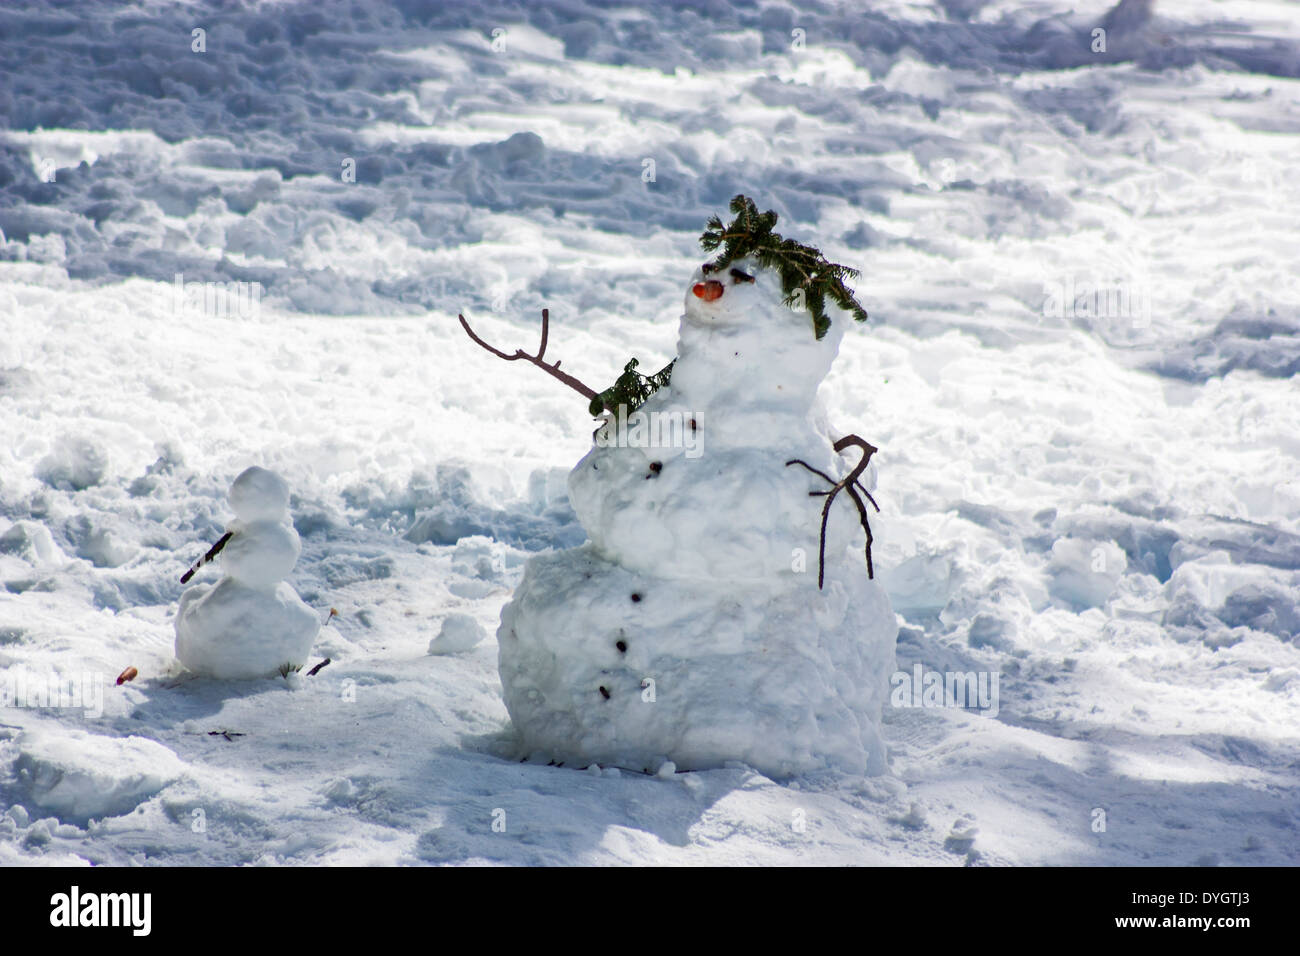 Mount San Jacinto, Palm Springs, California, a large snowman stands over a smaller partially built snowman with arm raised - Stock Image